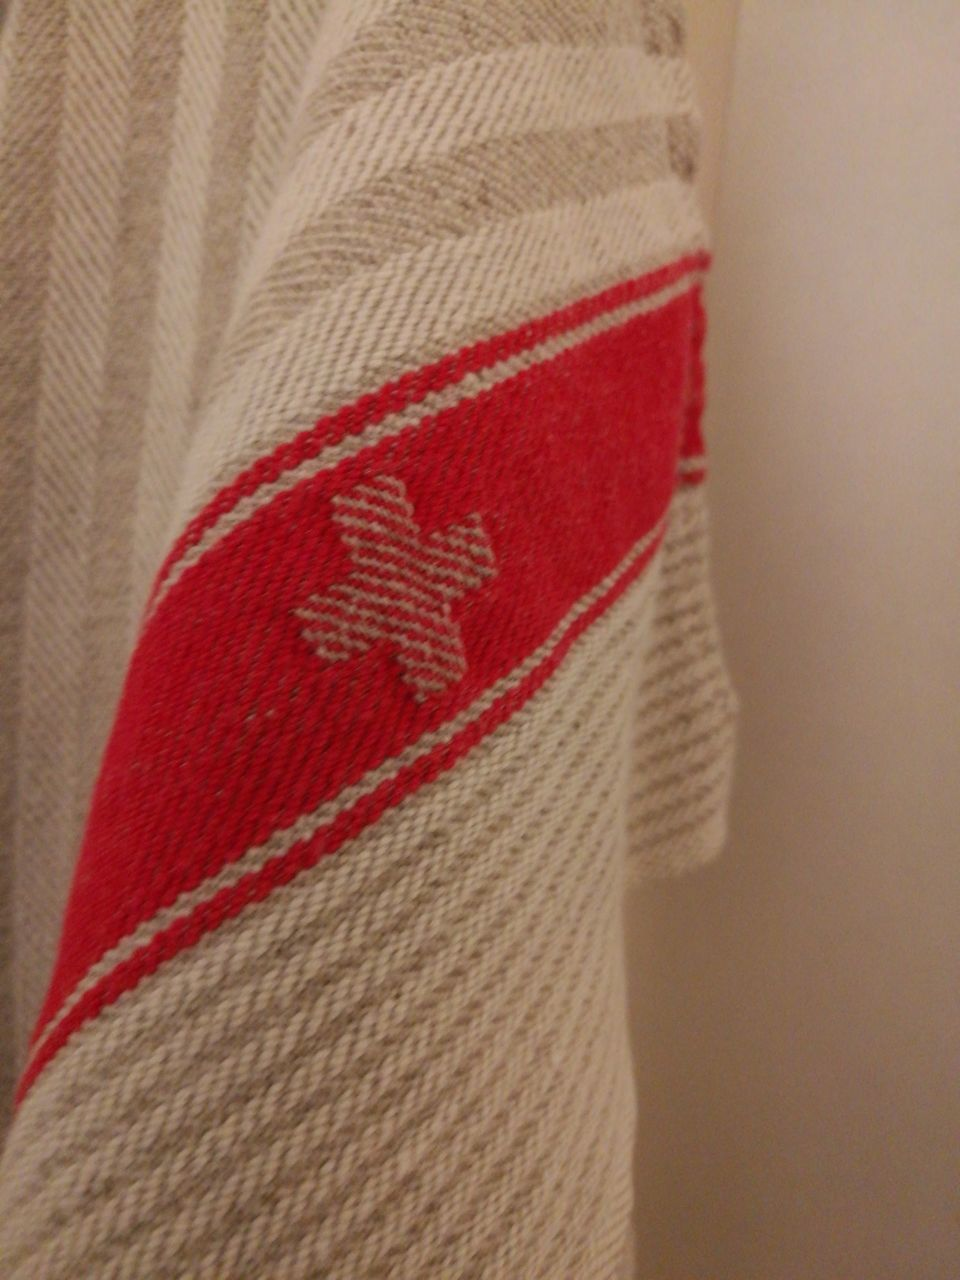 red, textile, close-up, no people, fabric, indoors, day